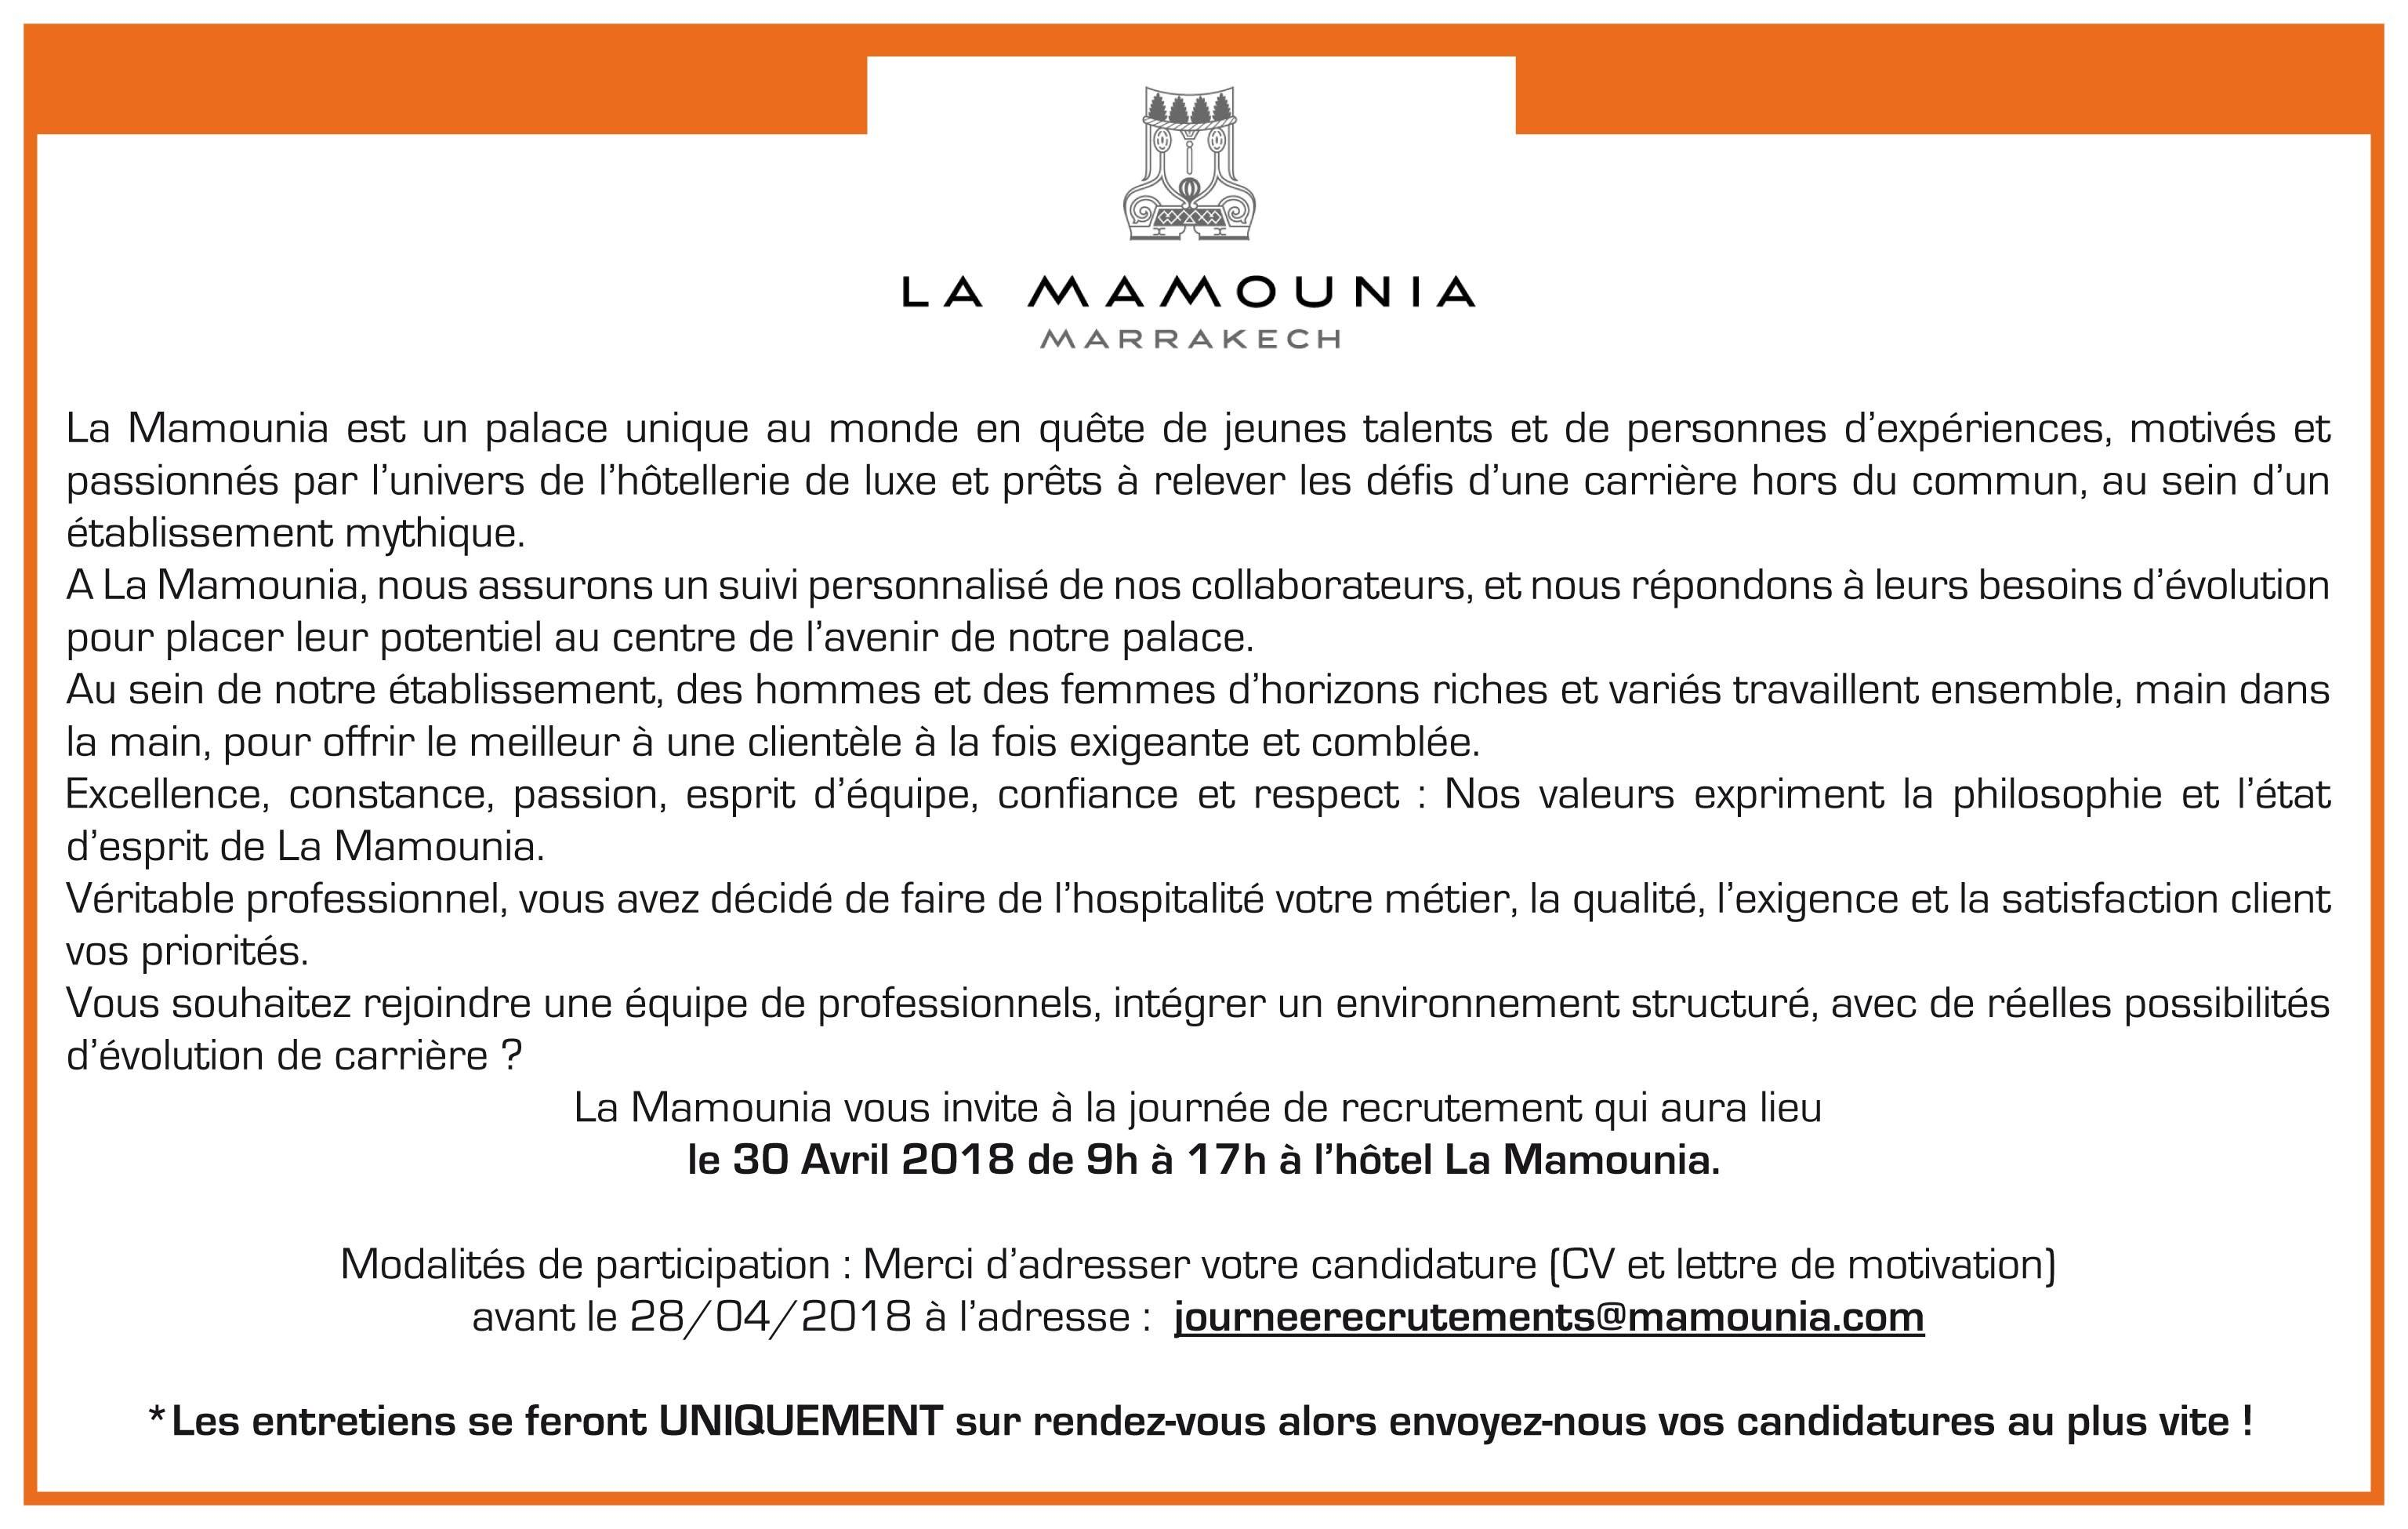 journ u00e9e de recrutement la mamounia marrakech 30 avril 2018